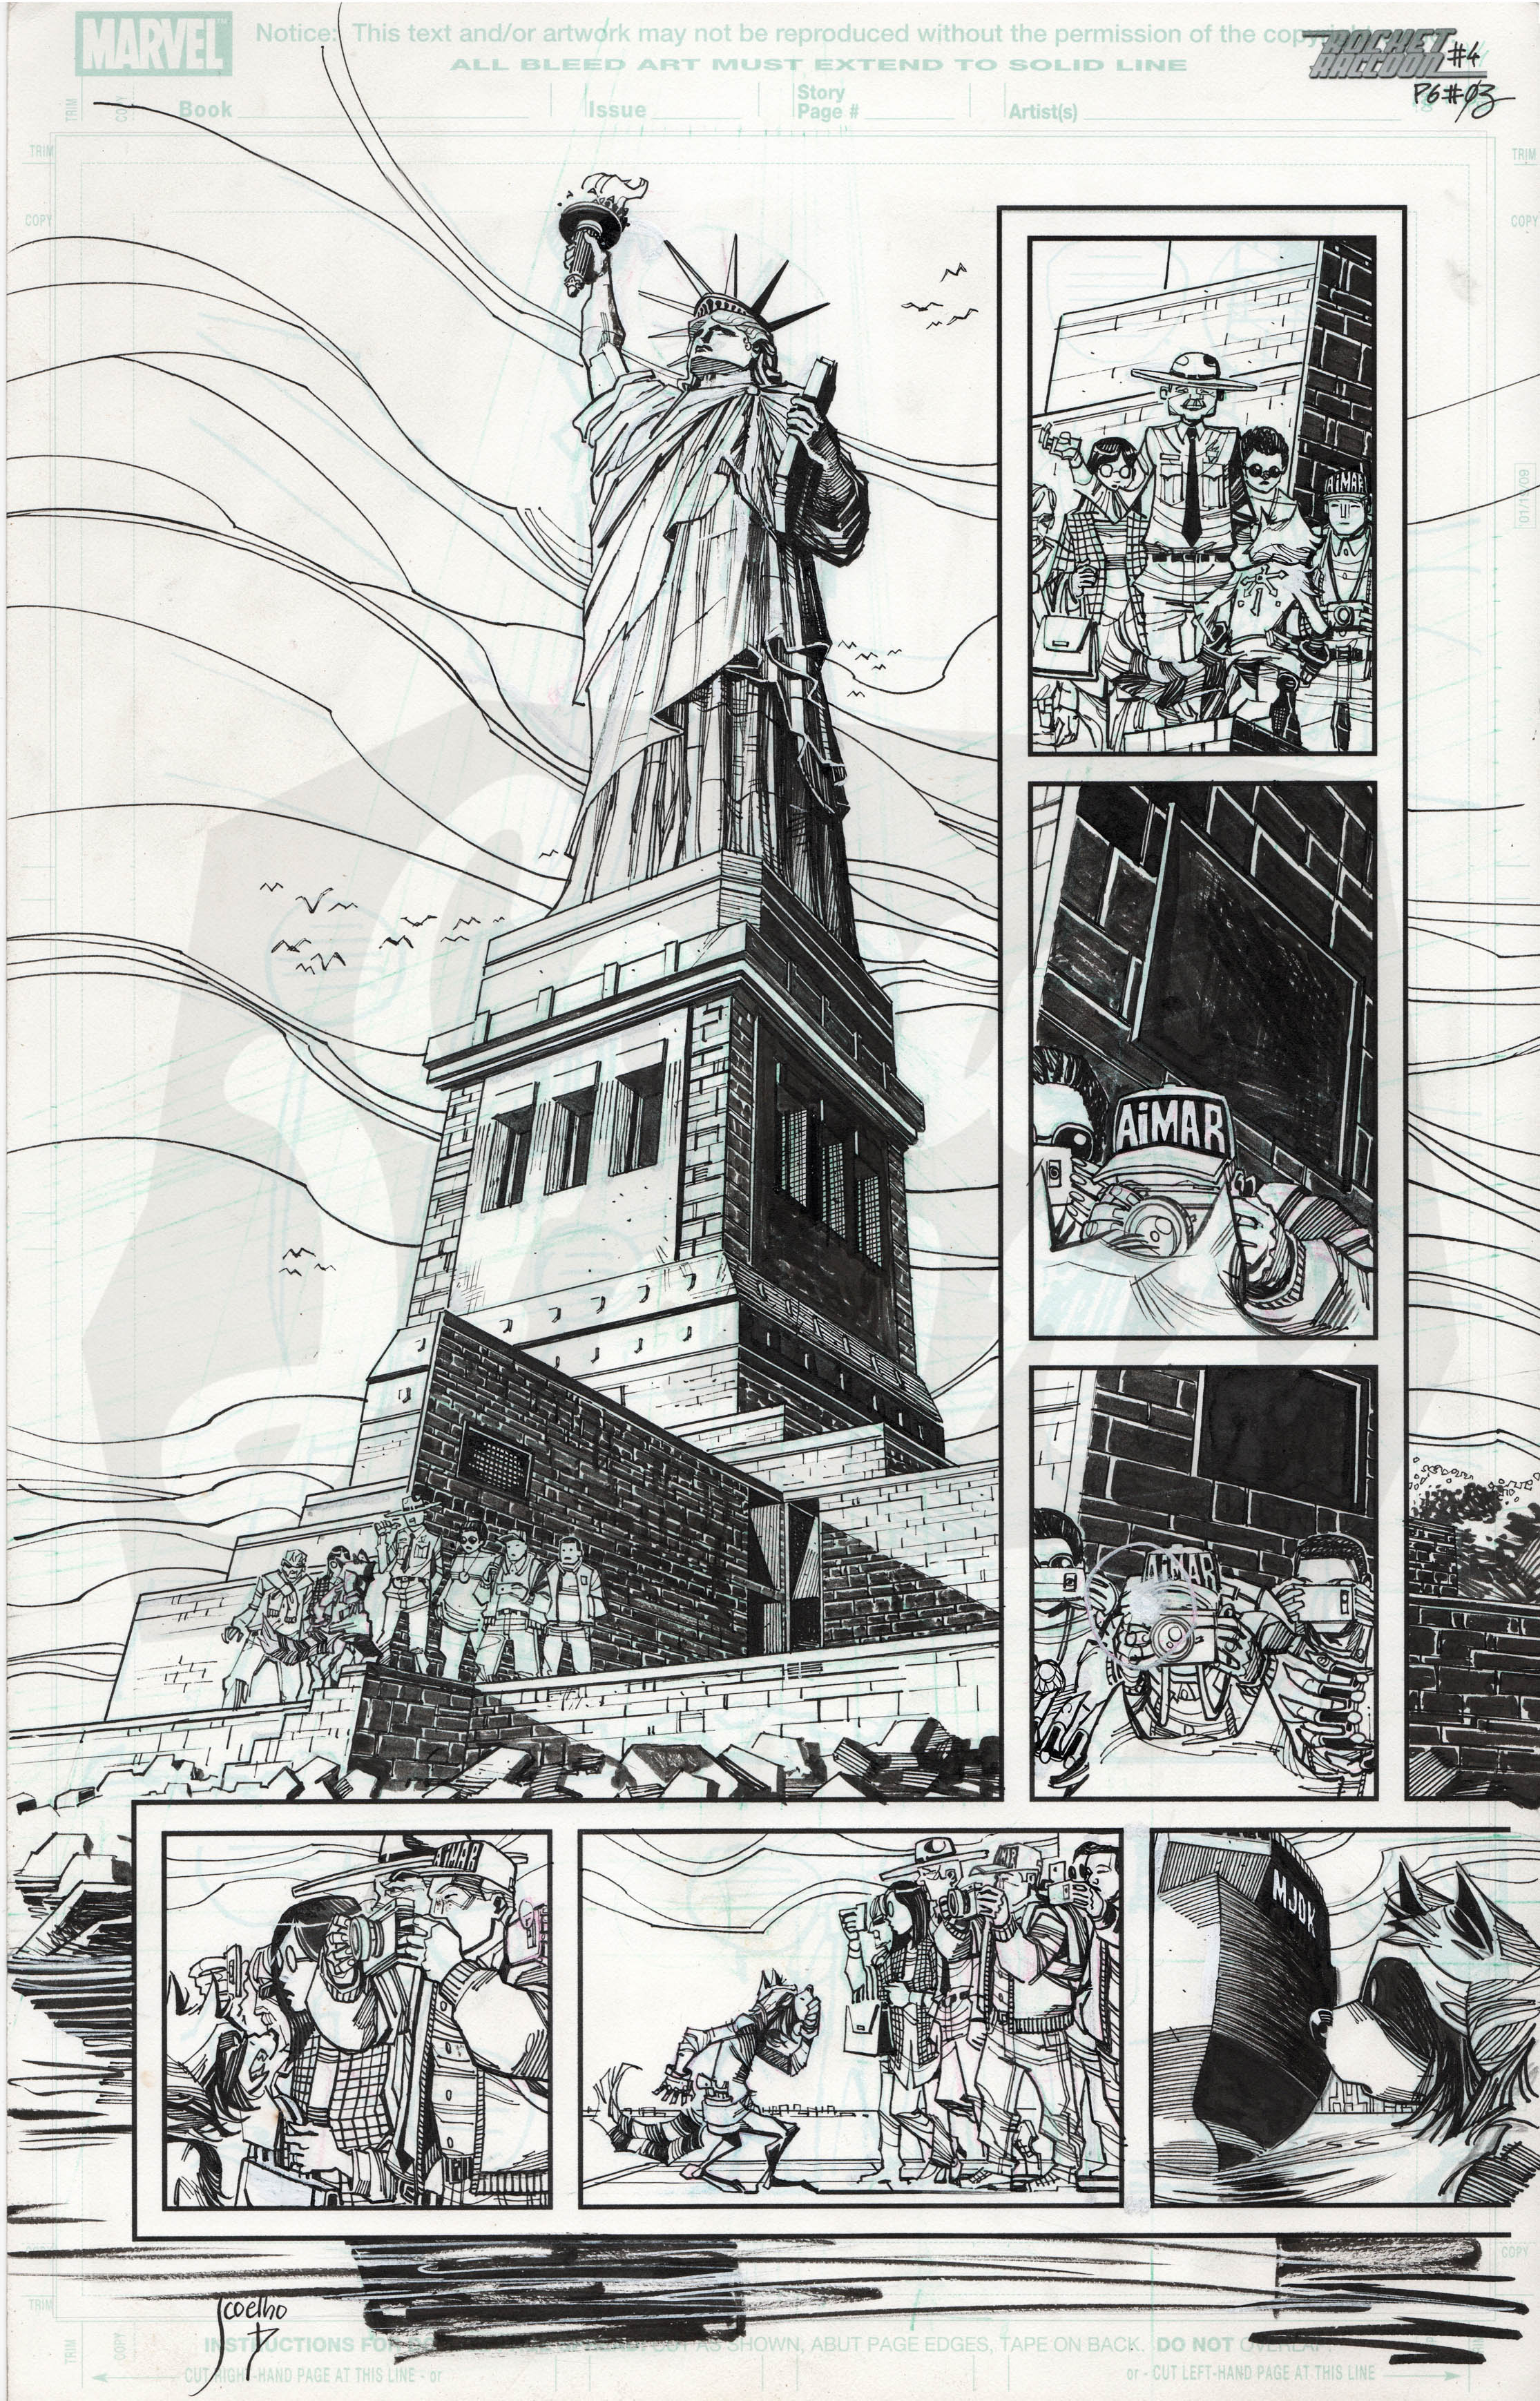 Rocket Raccoon #4, Page 3